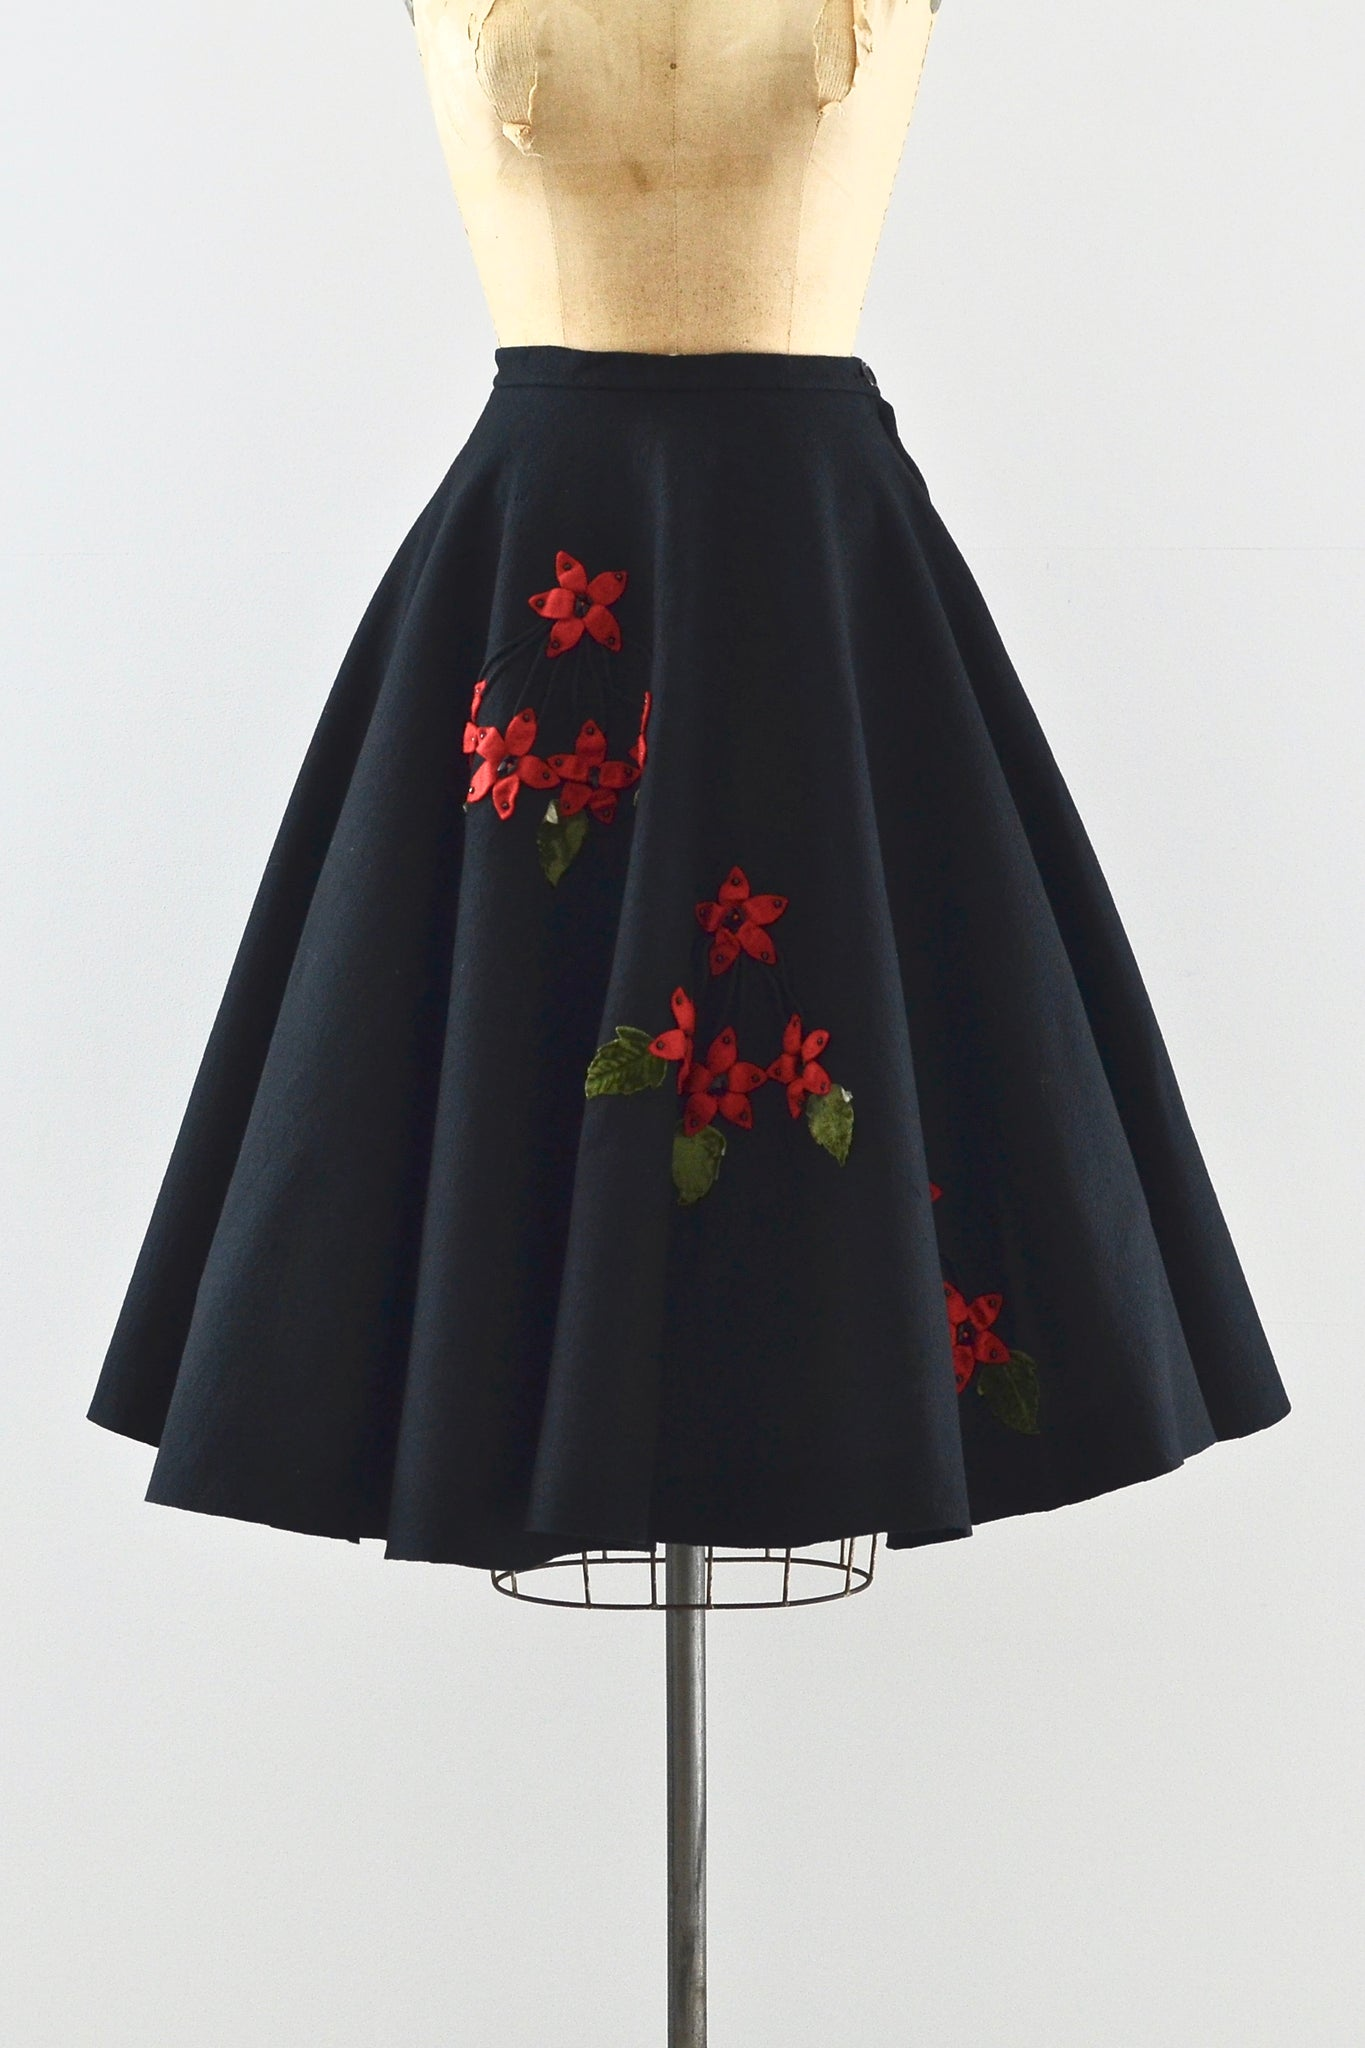 1950s Floral Applique Skirt - Pickled Vintage